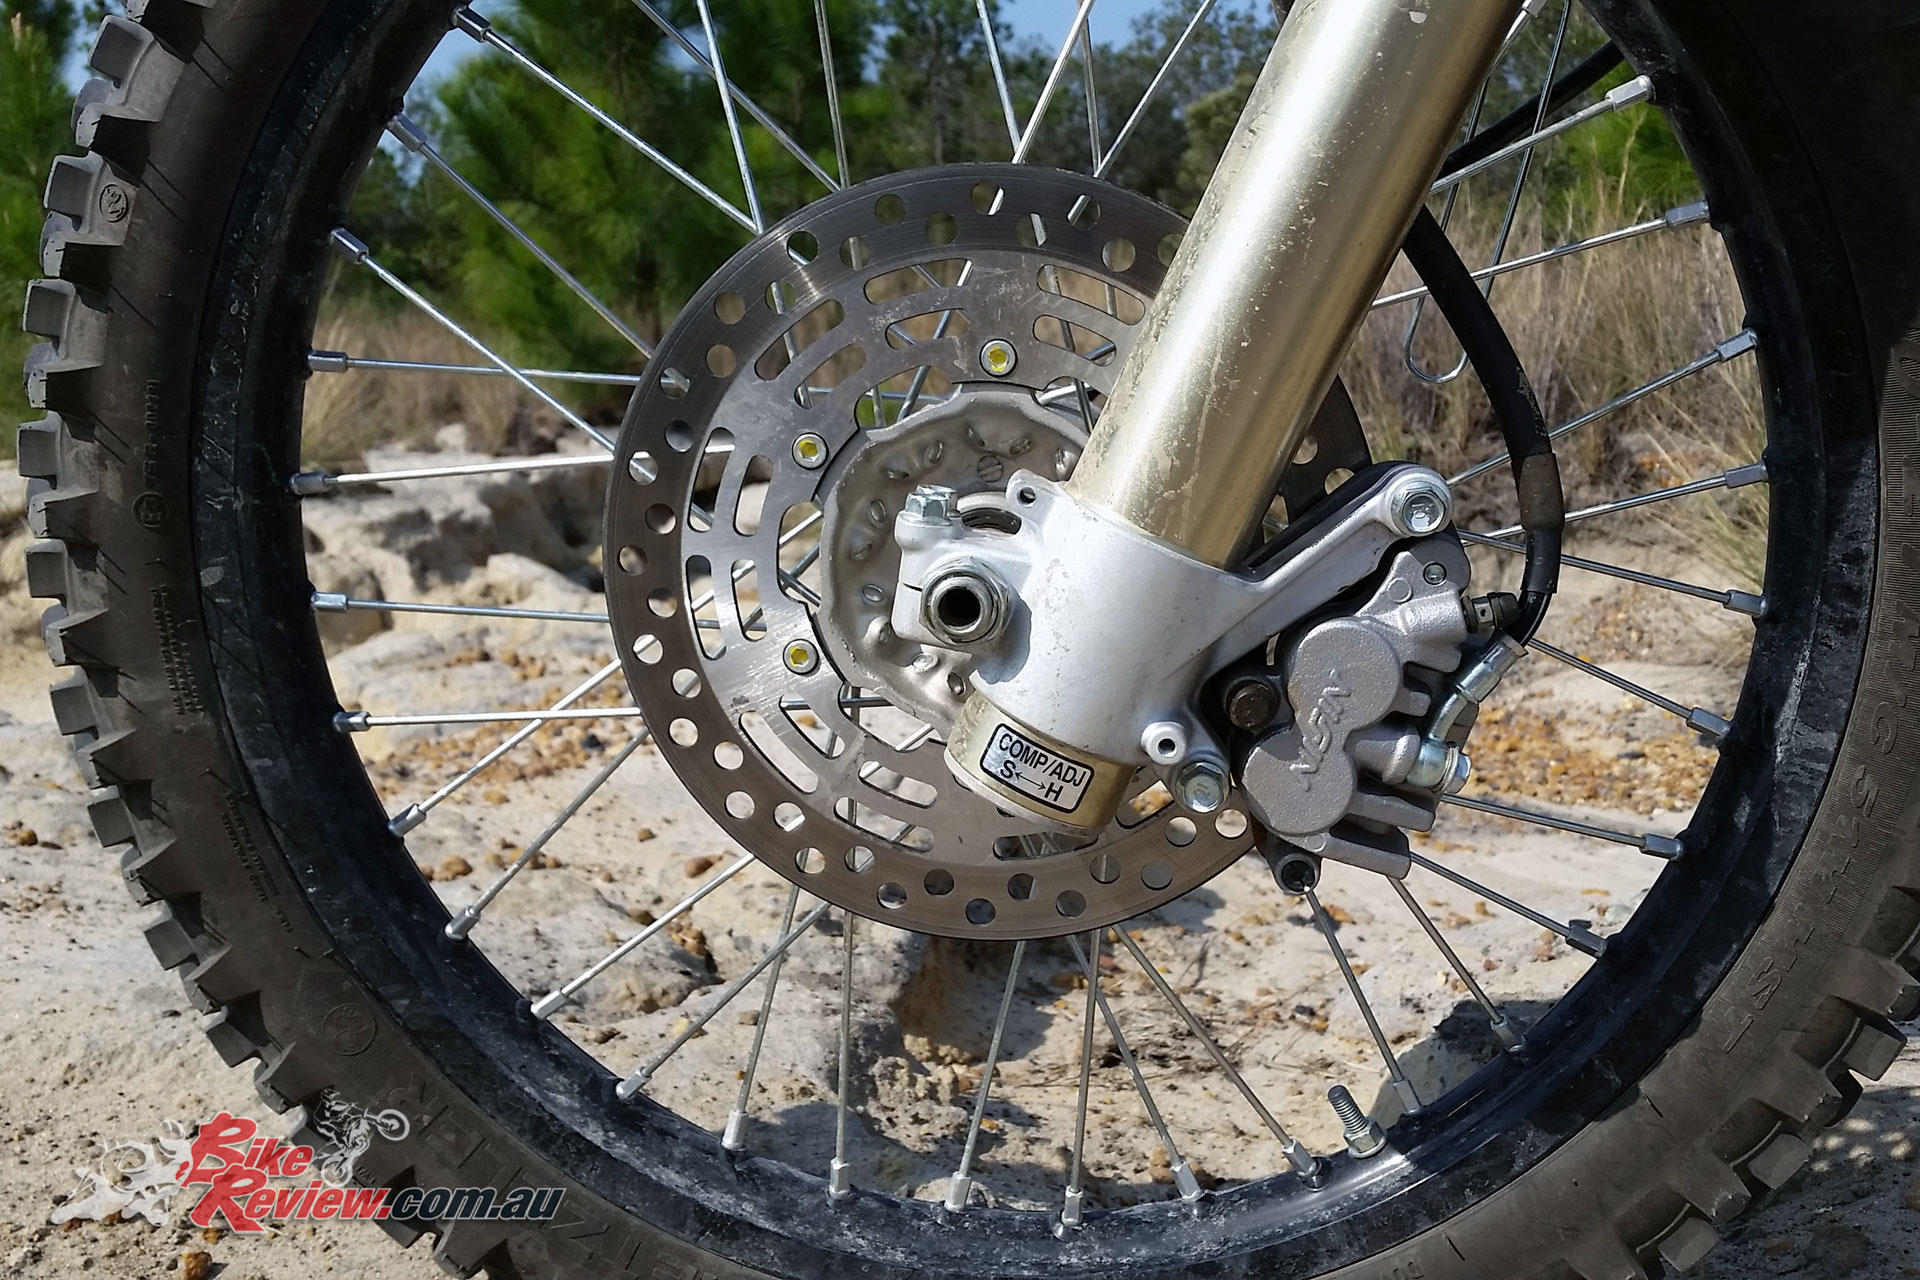 2018 Suzuki DR-Z400, Nissin twin-piston caliper, 250mm rotor